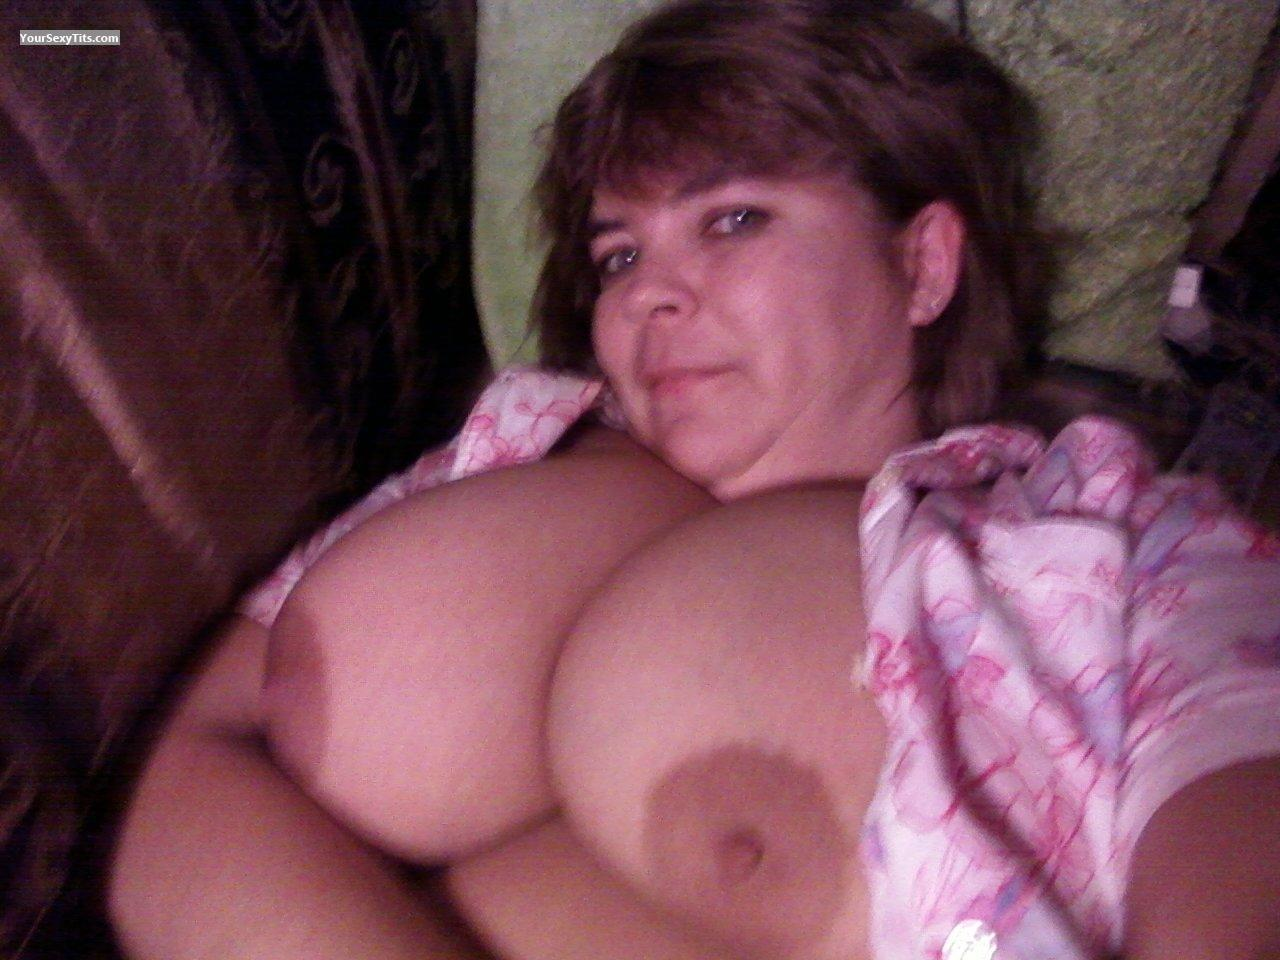 Tit Flash: Very Big Tits - Topless Dianathaa from United States